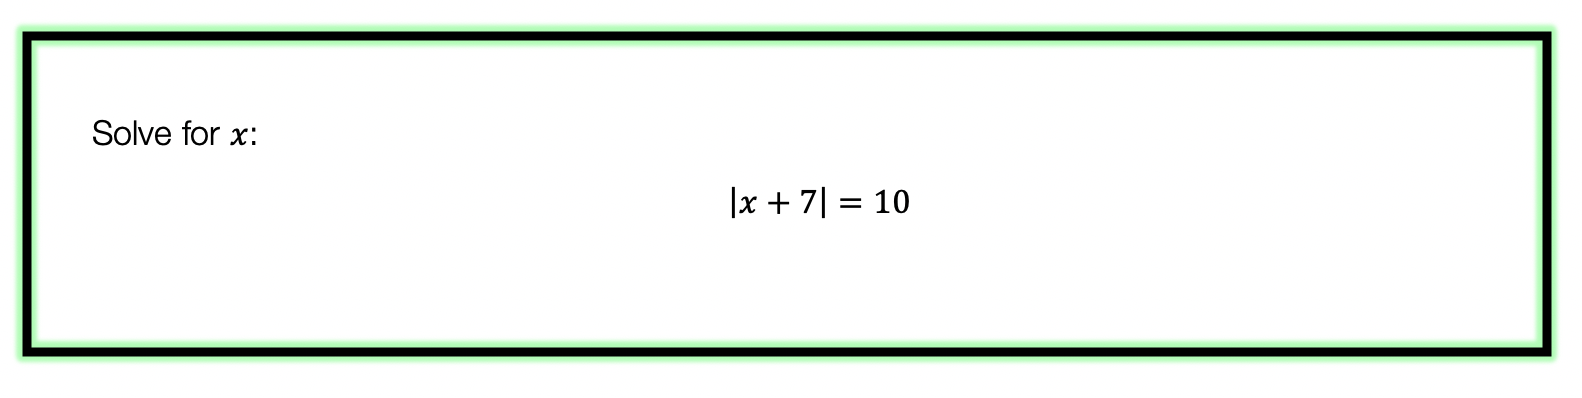 Absolute Value Equations example